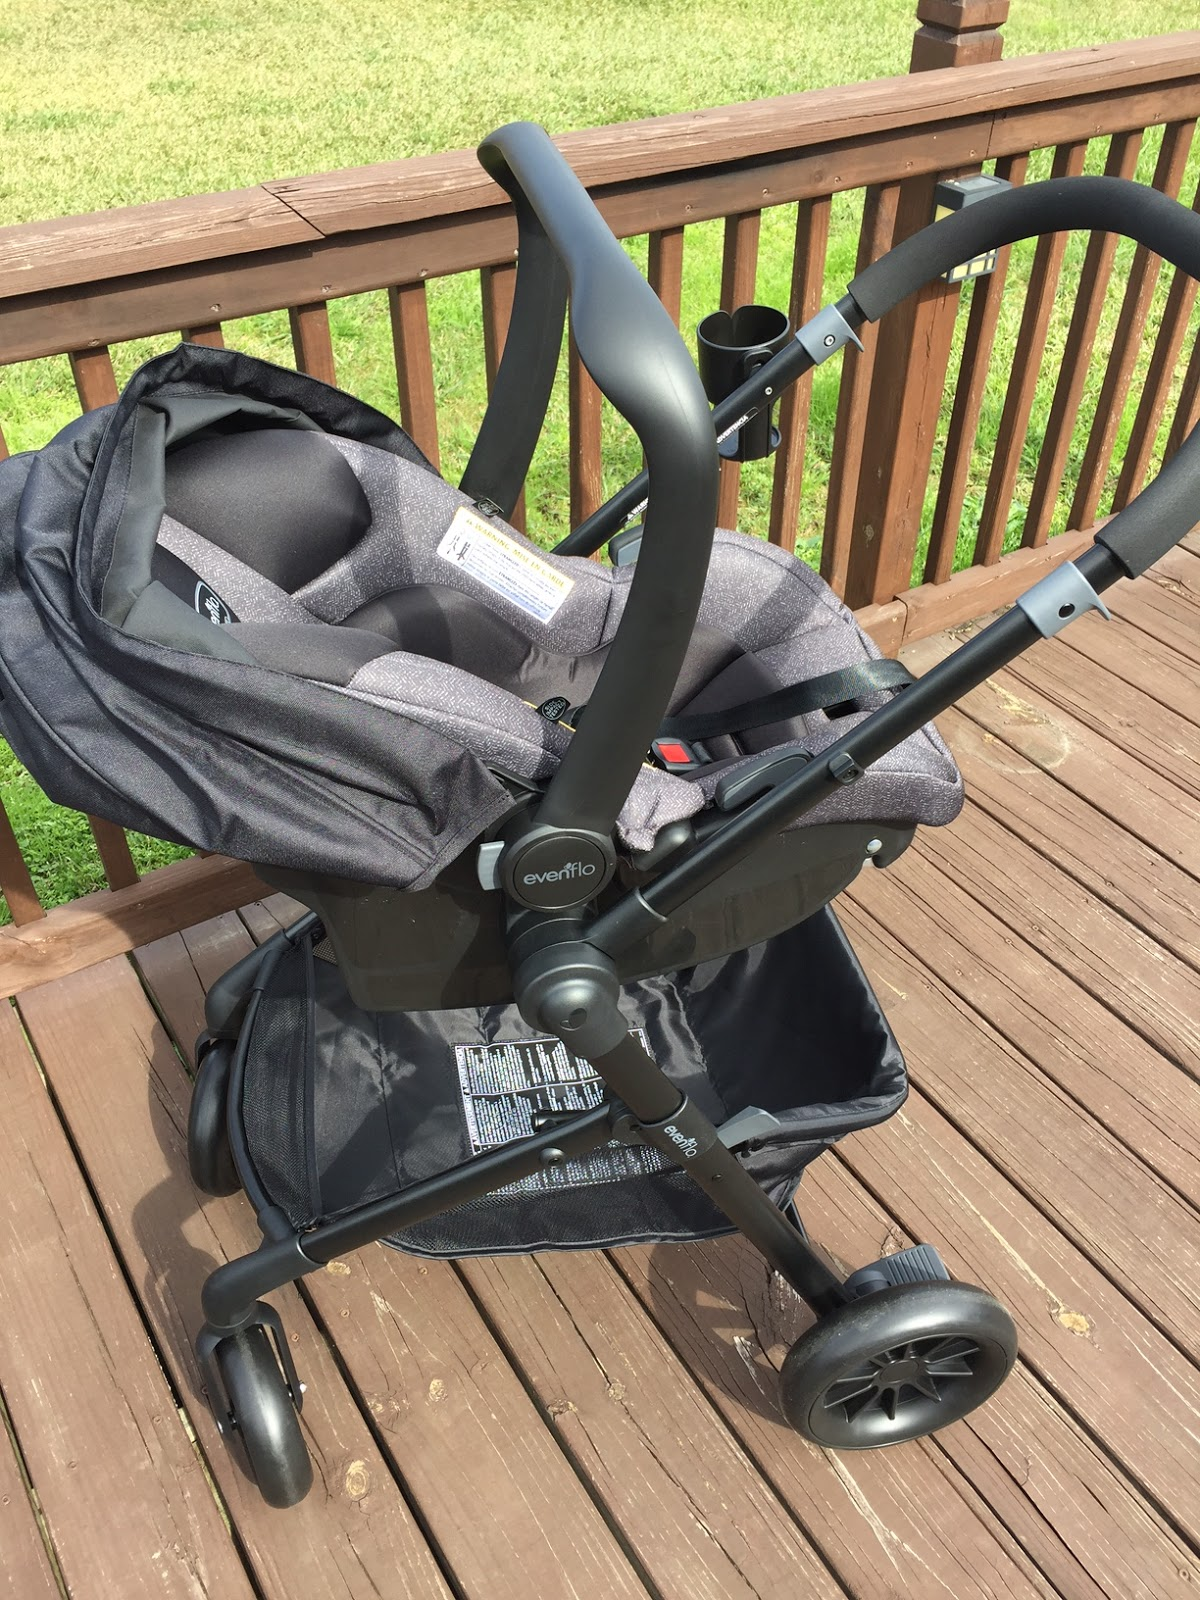 In Infant Mode The Toddler Base Can Also Be Removed And Car Seat Fits Right Into Stroller